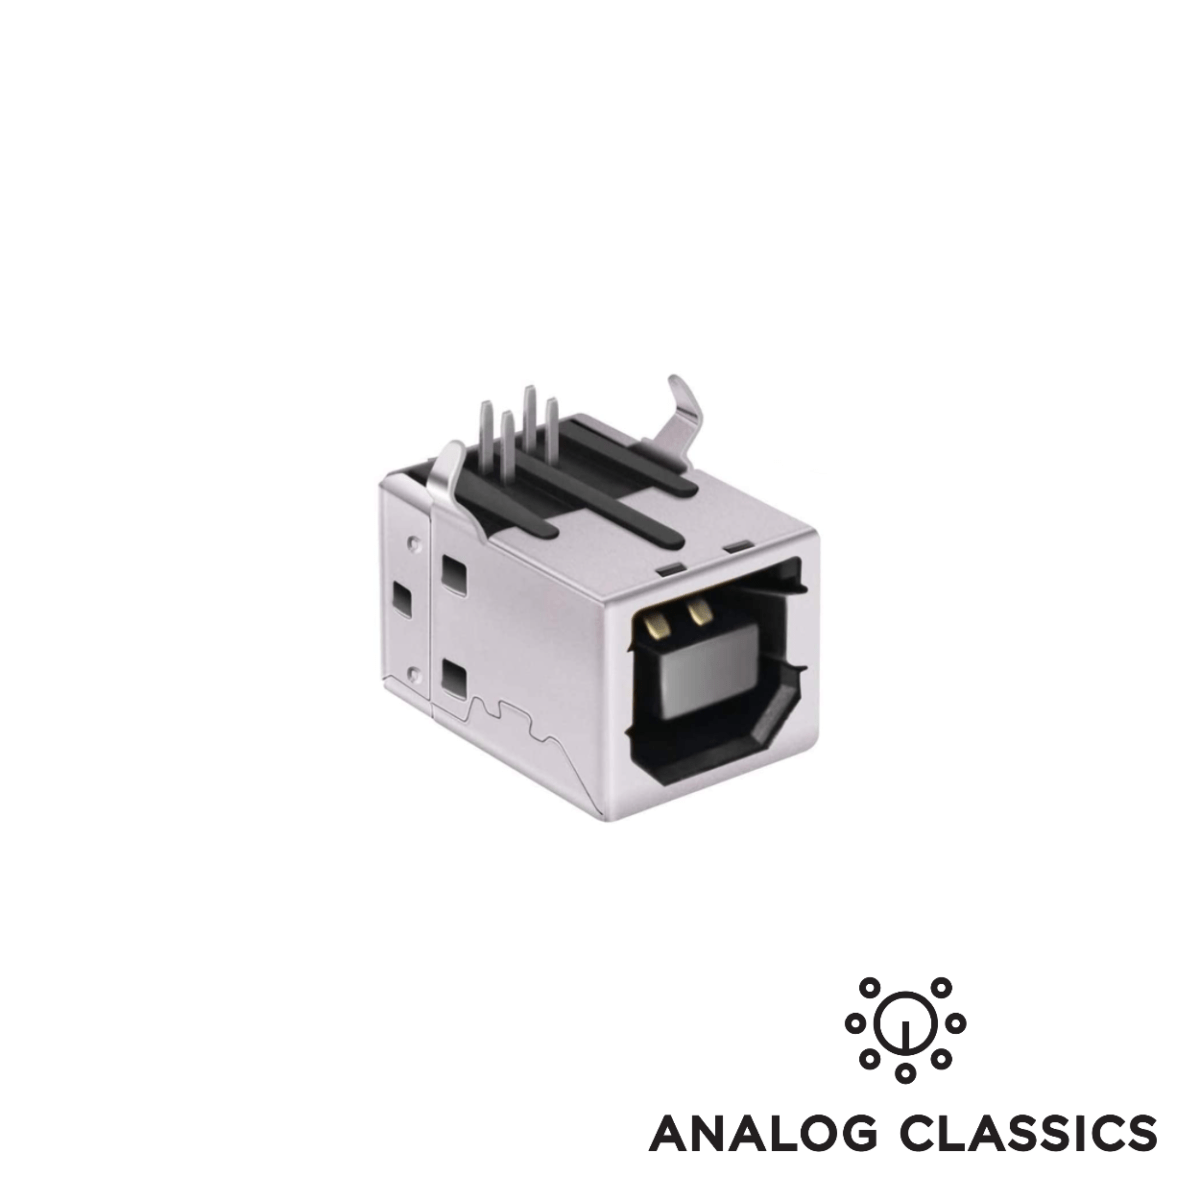 M-Audio Axiom 25, 49, 61 USB Jack/Connector Replacement